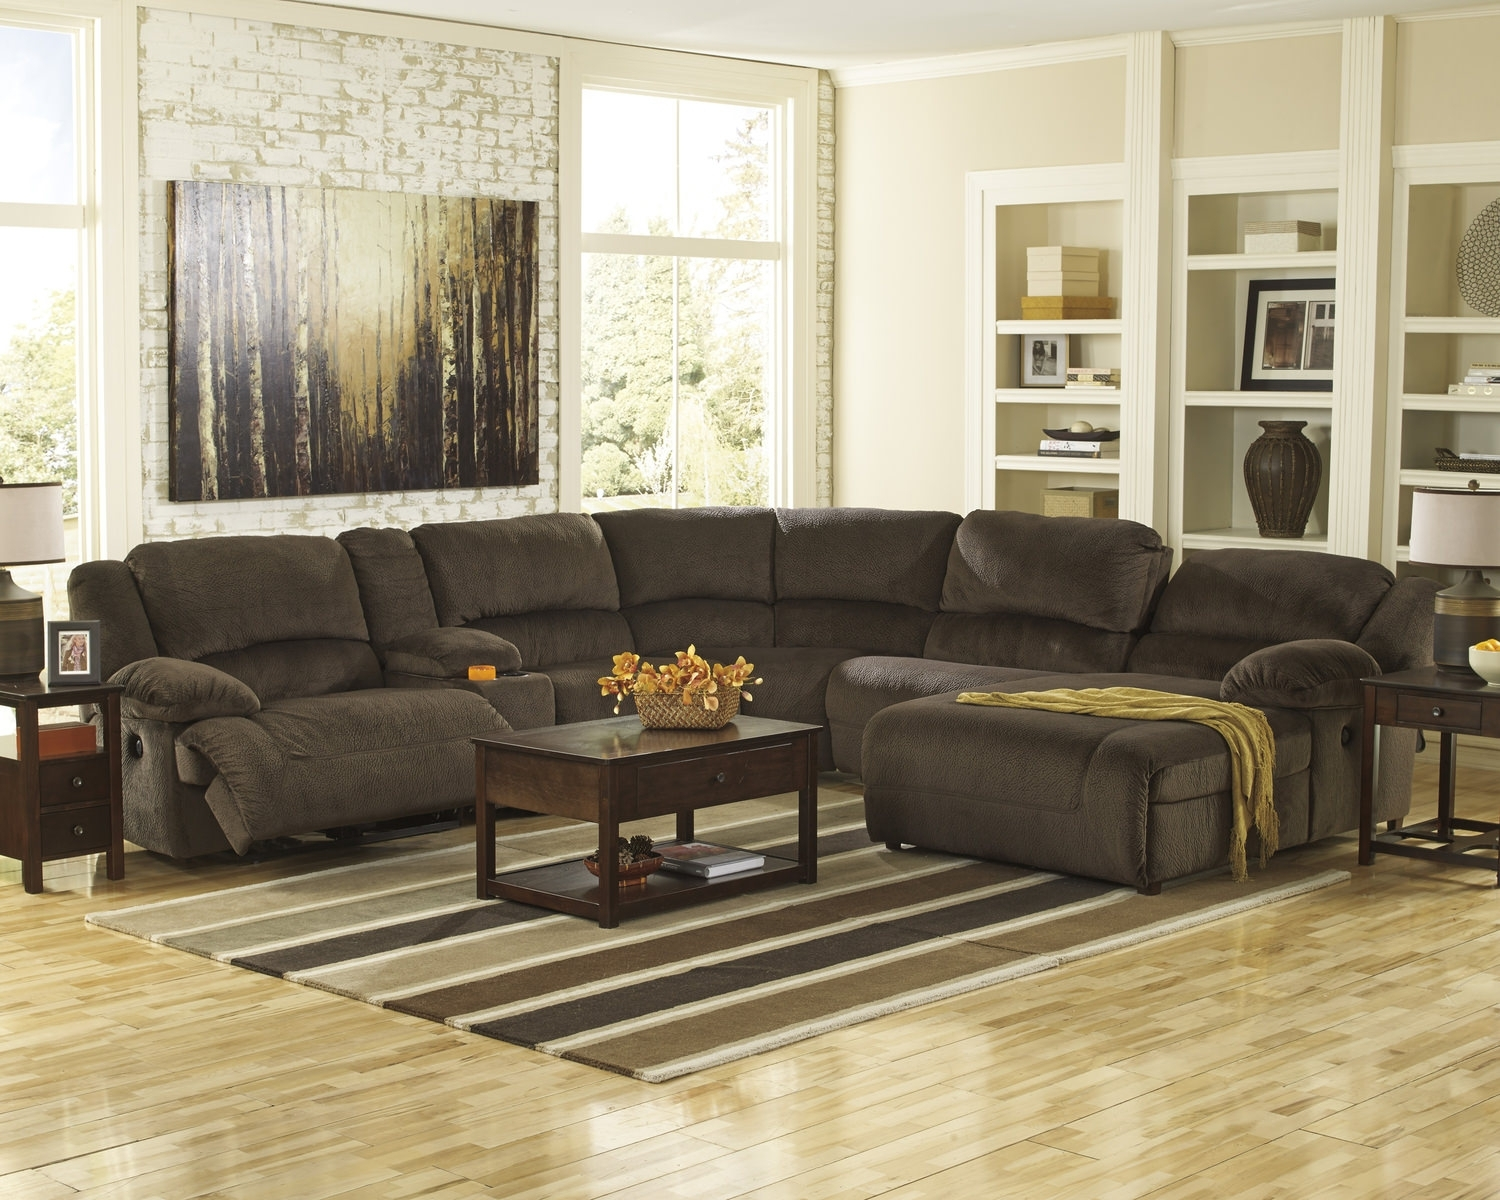 Hero 6 Piece Reclining Sectional | Dock86 In Dock 86 Sectional Sofas (Image 6 of 10)